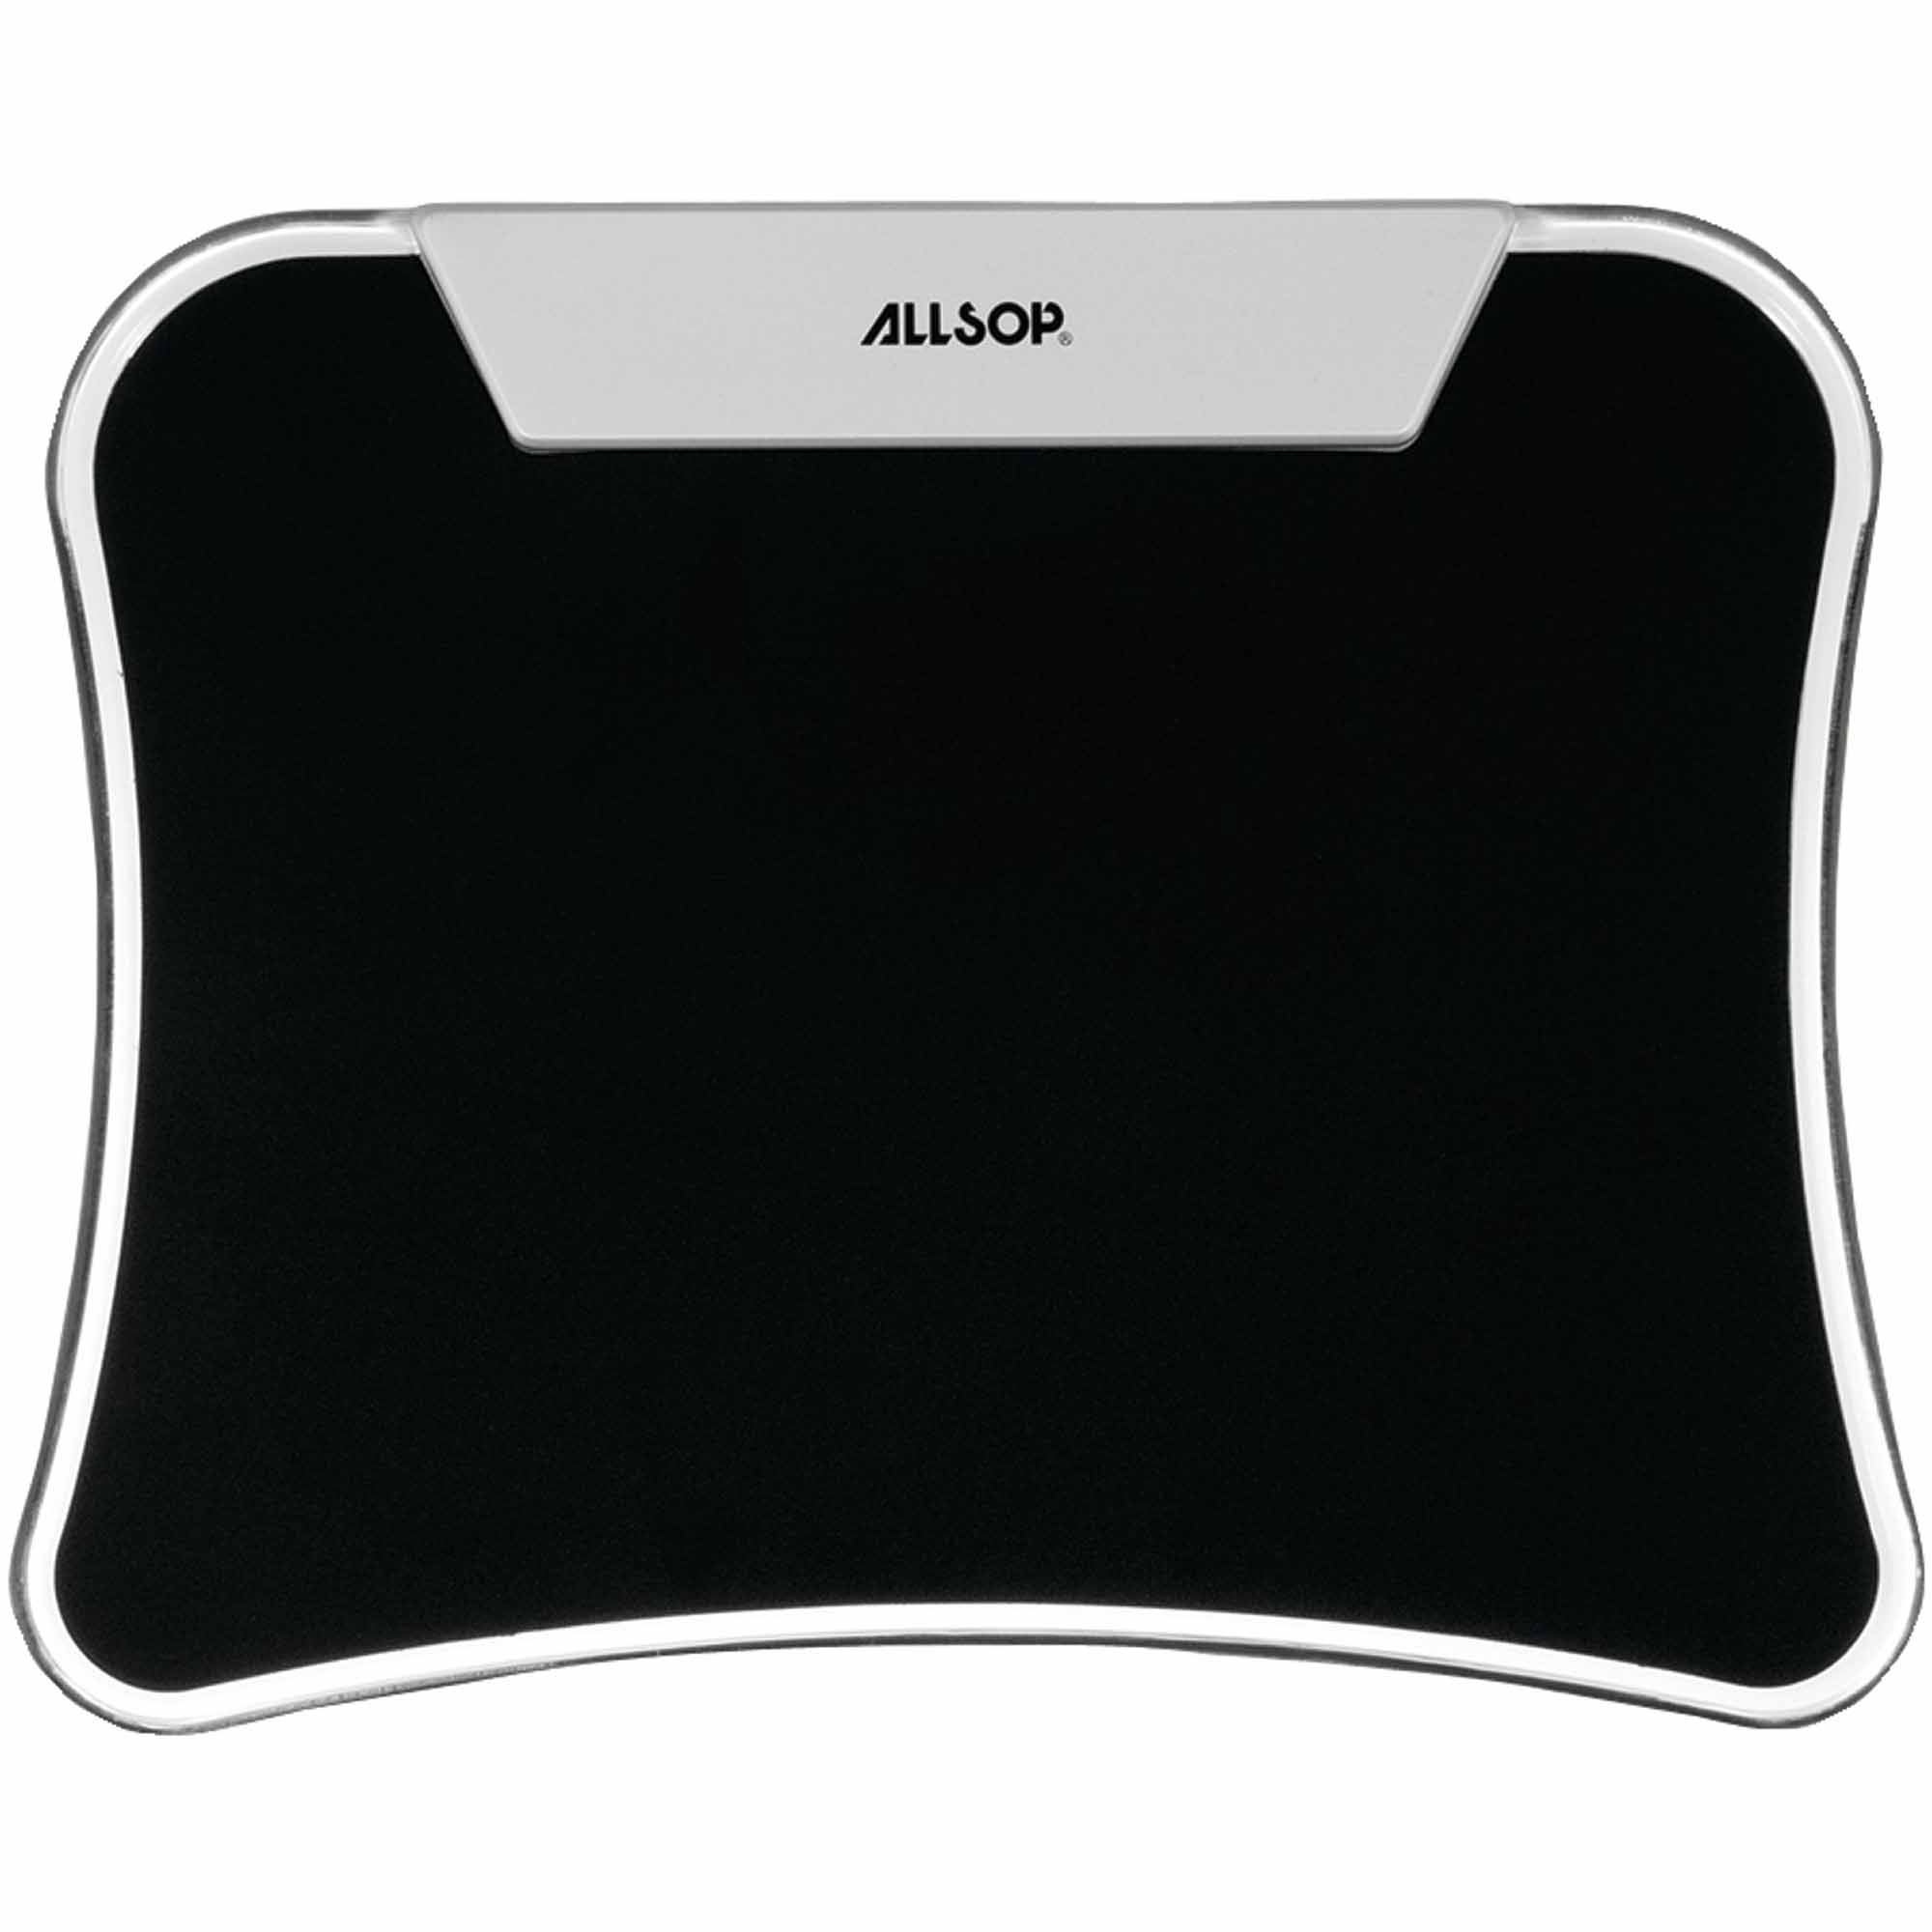 Allsop 30865 LED Mouse Pad, Black by Allsop